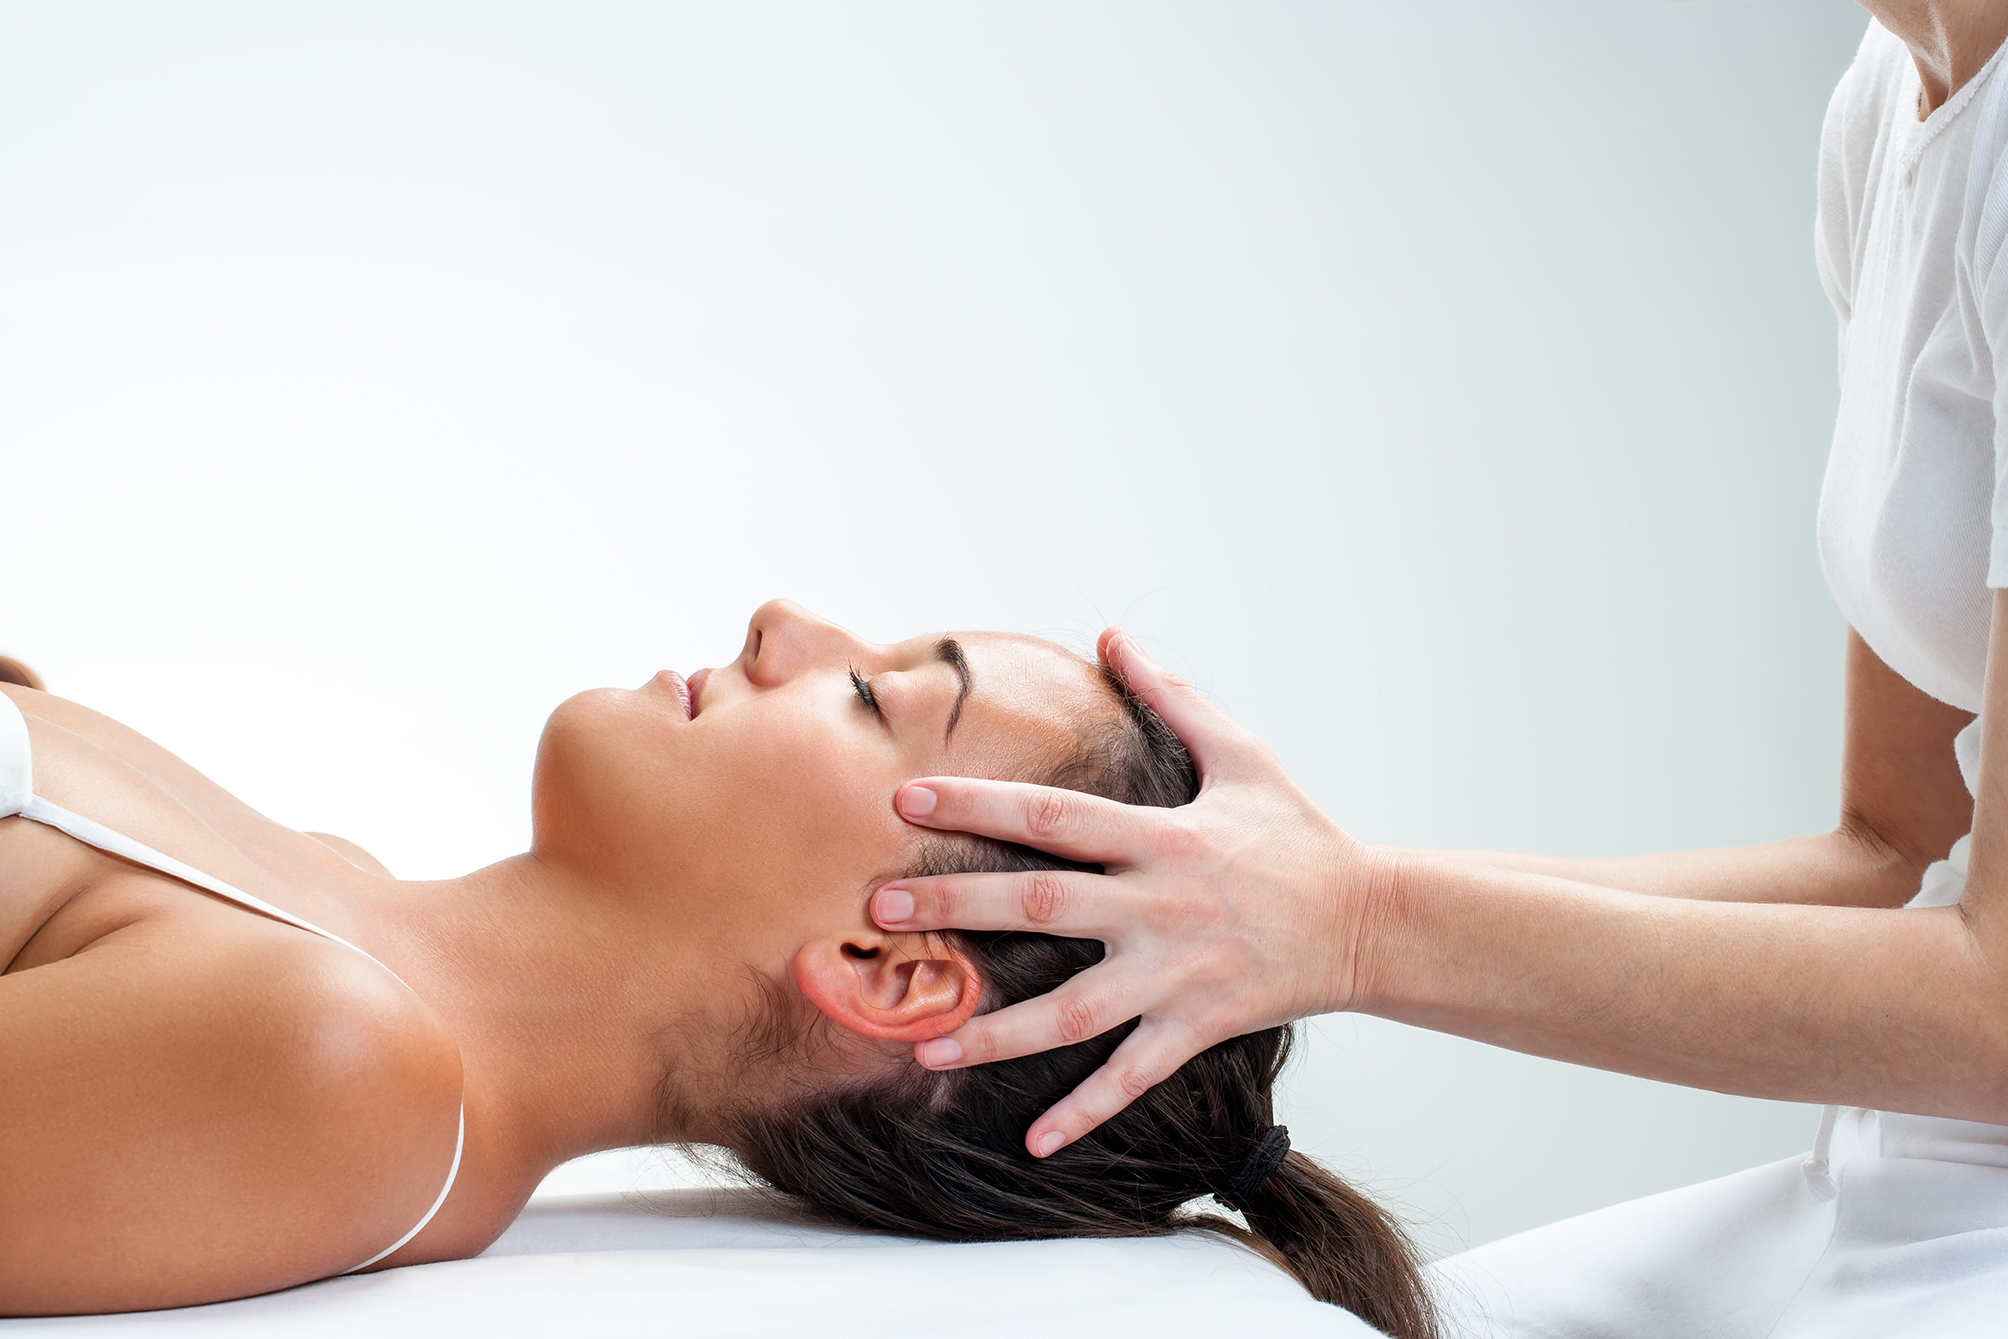 A woman receiving a head massage